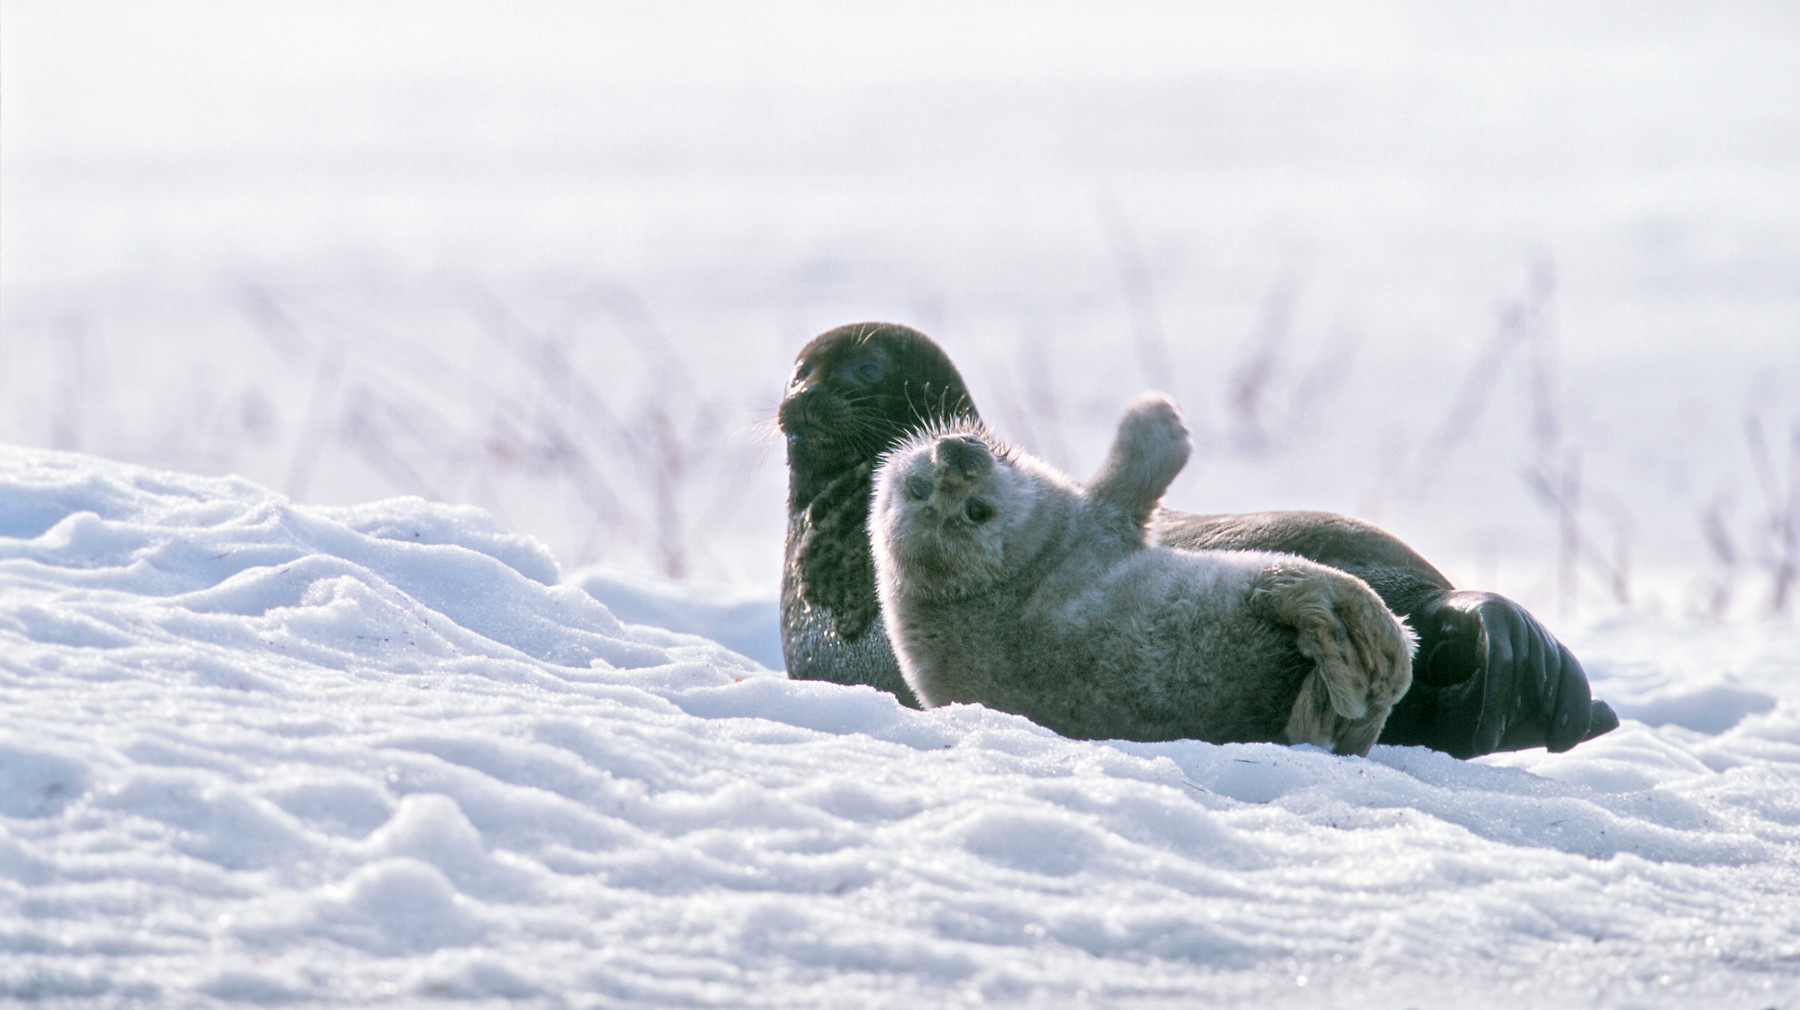 A mother Saimaa ringed seal and her pup take some winter sun, lying on the snow-covered ground.